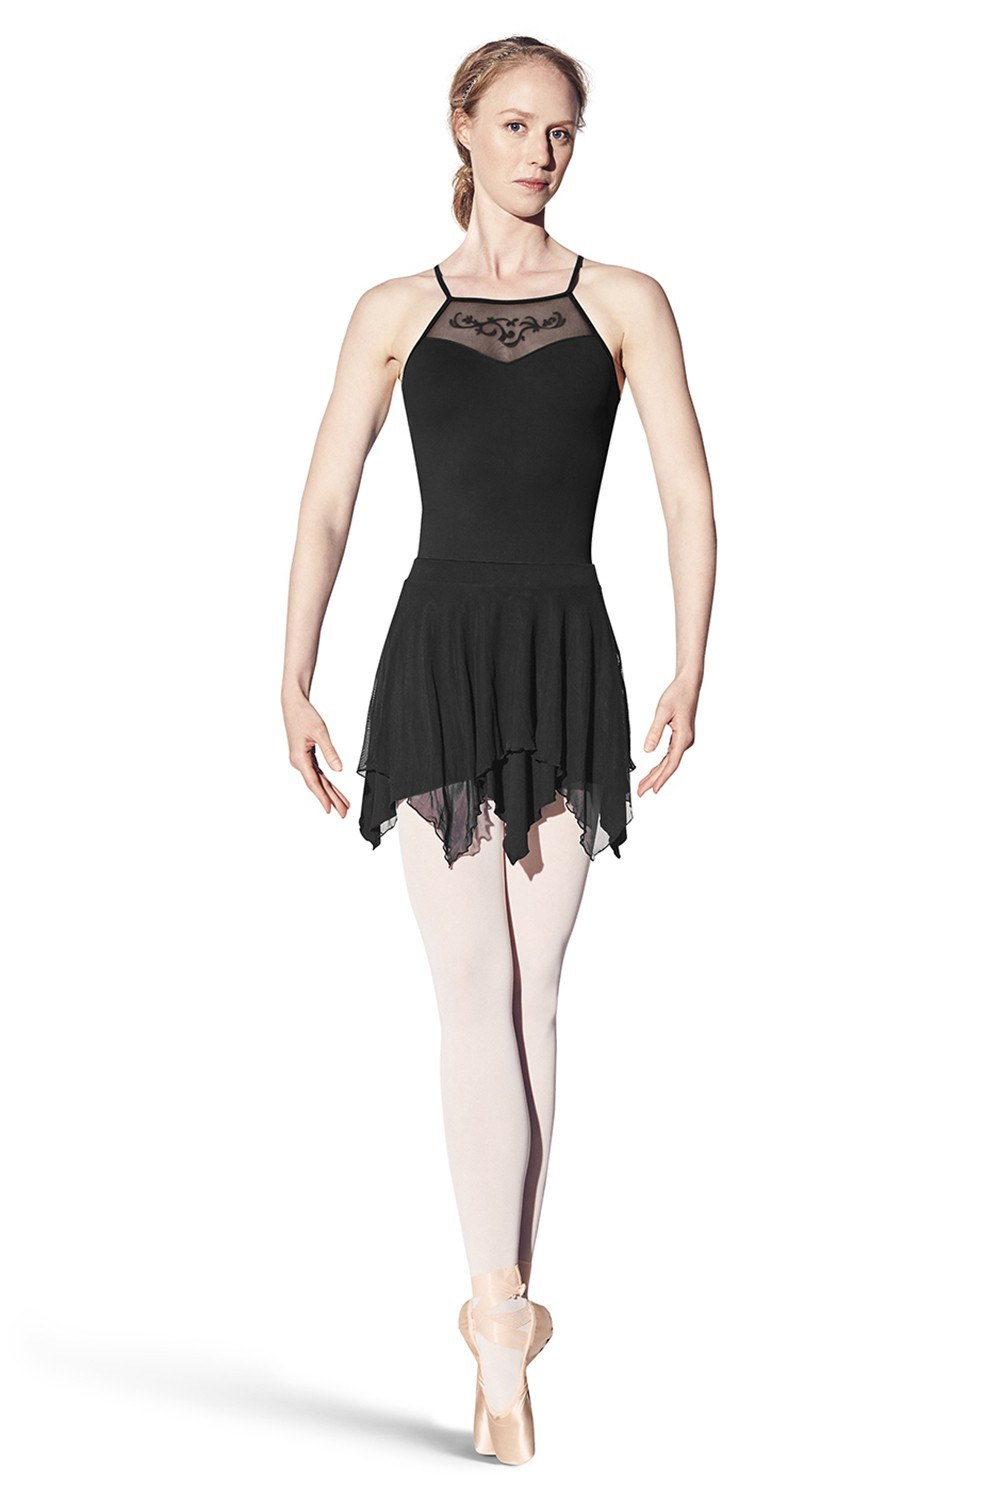 Heloise Women's Dance Skirts